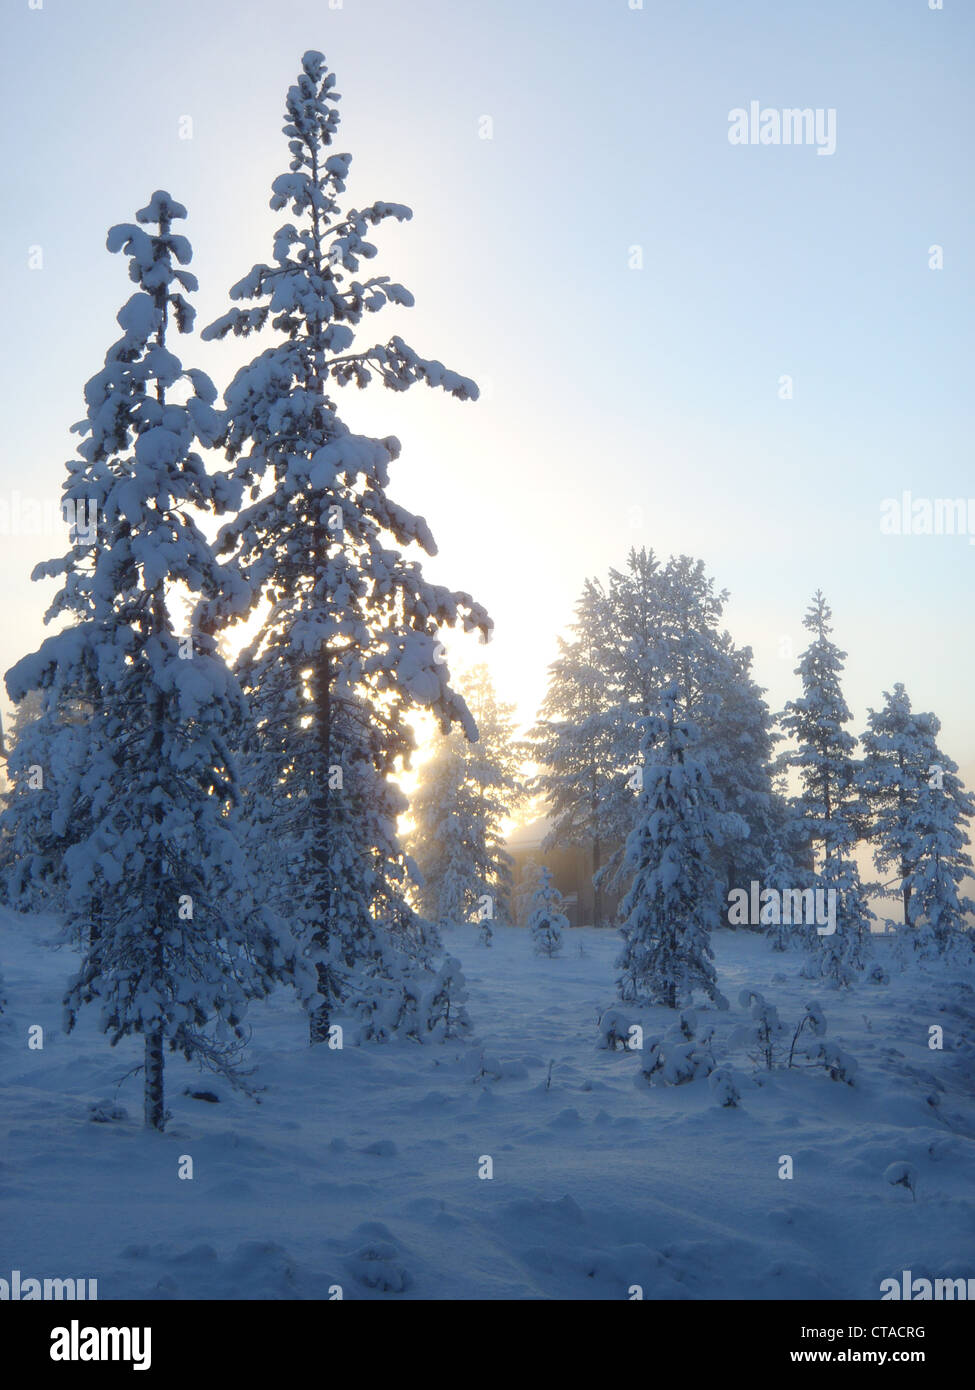 Sun shinning trough snowy pines - Stock Image